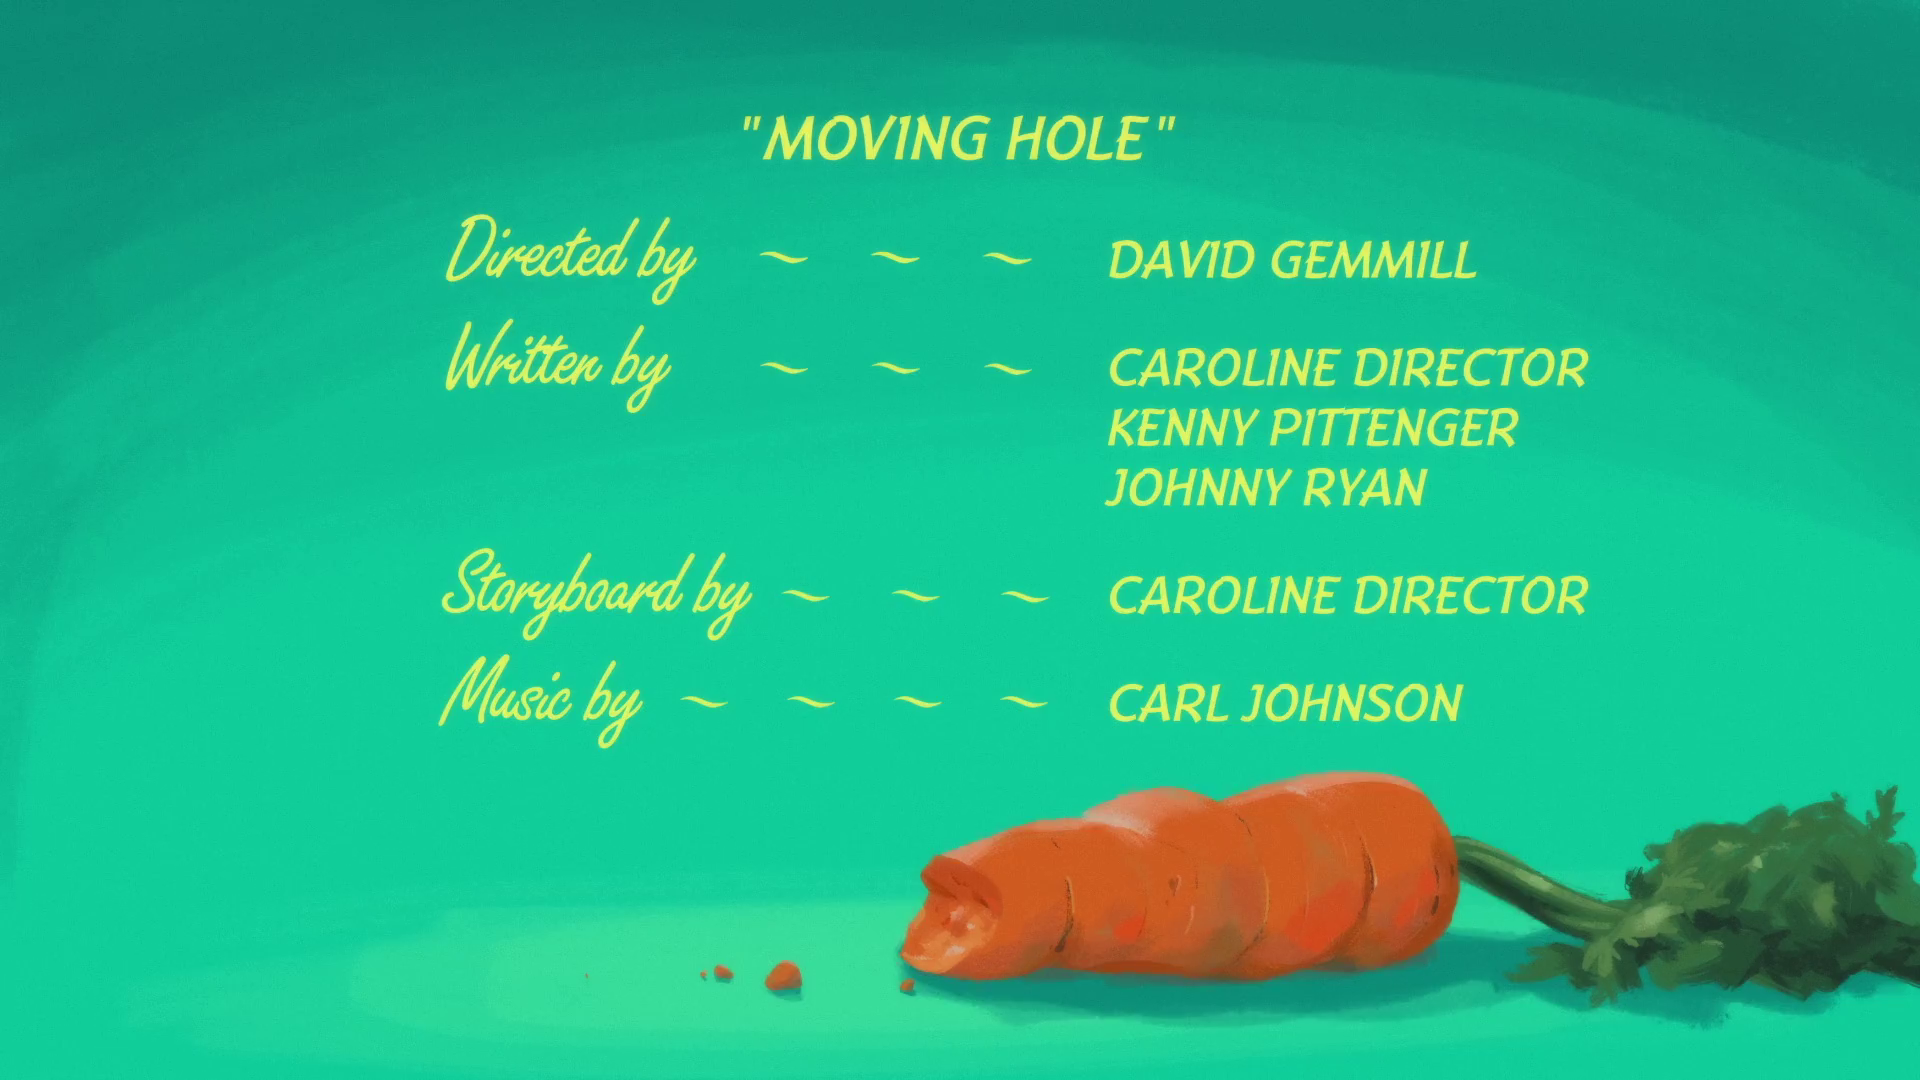 Moving Hole